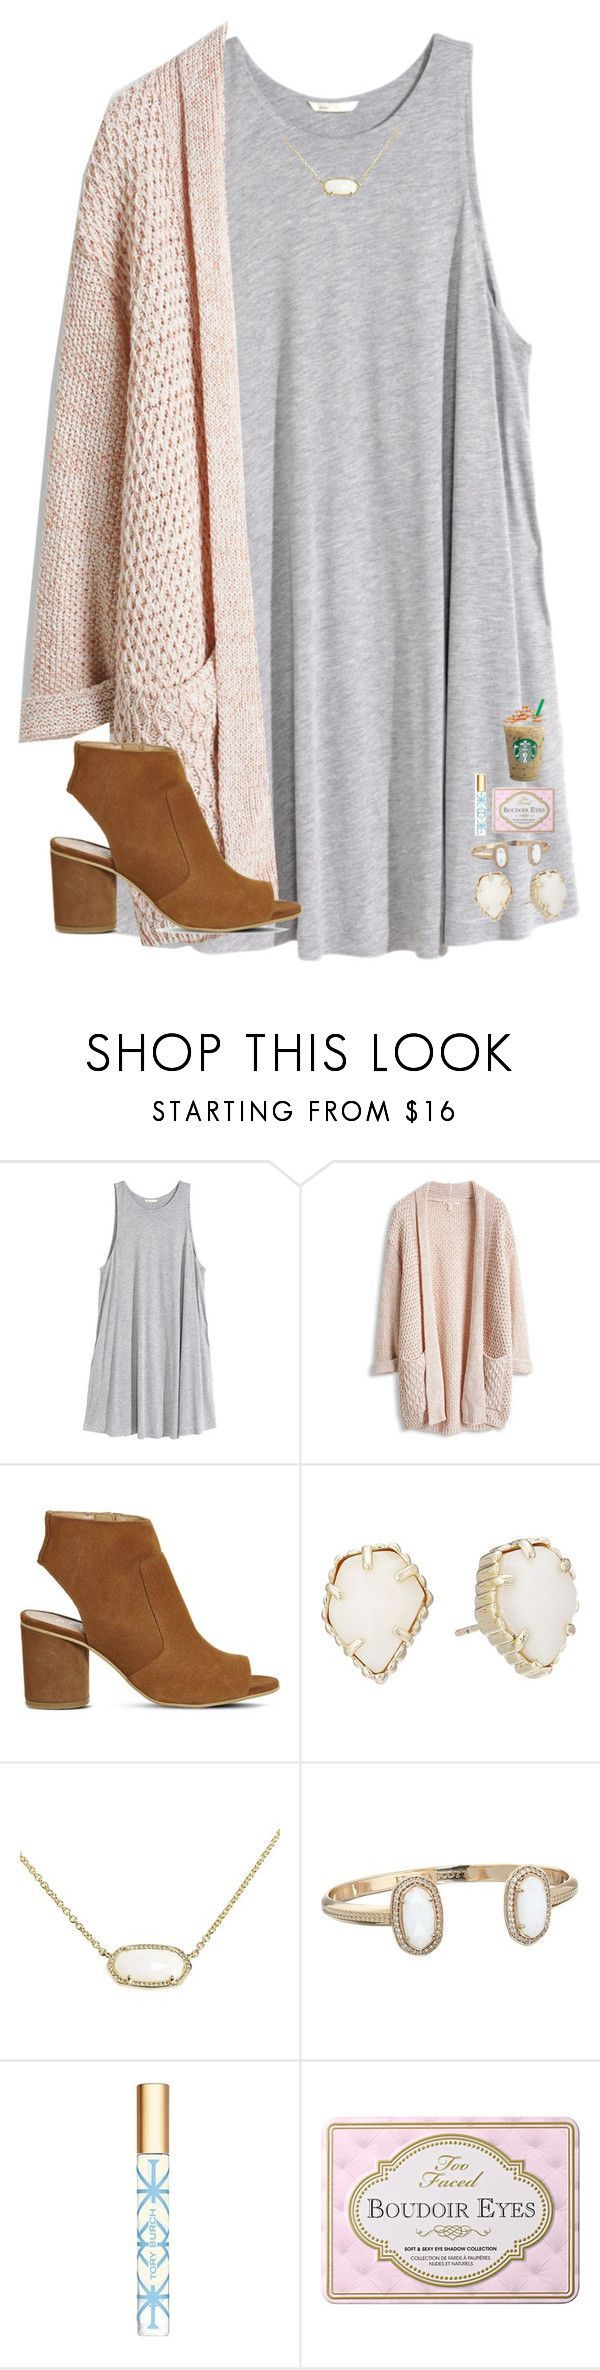 """""""Winter Break Friday and Monday ❄️❄️❄️❄️❄️"""" by mae343 ❤ liked on Polyvore featuring H&M, Office, Kendra Scott and Tory Burch"""